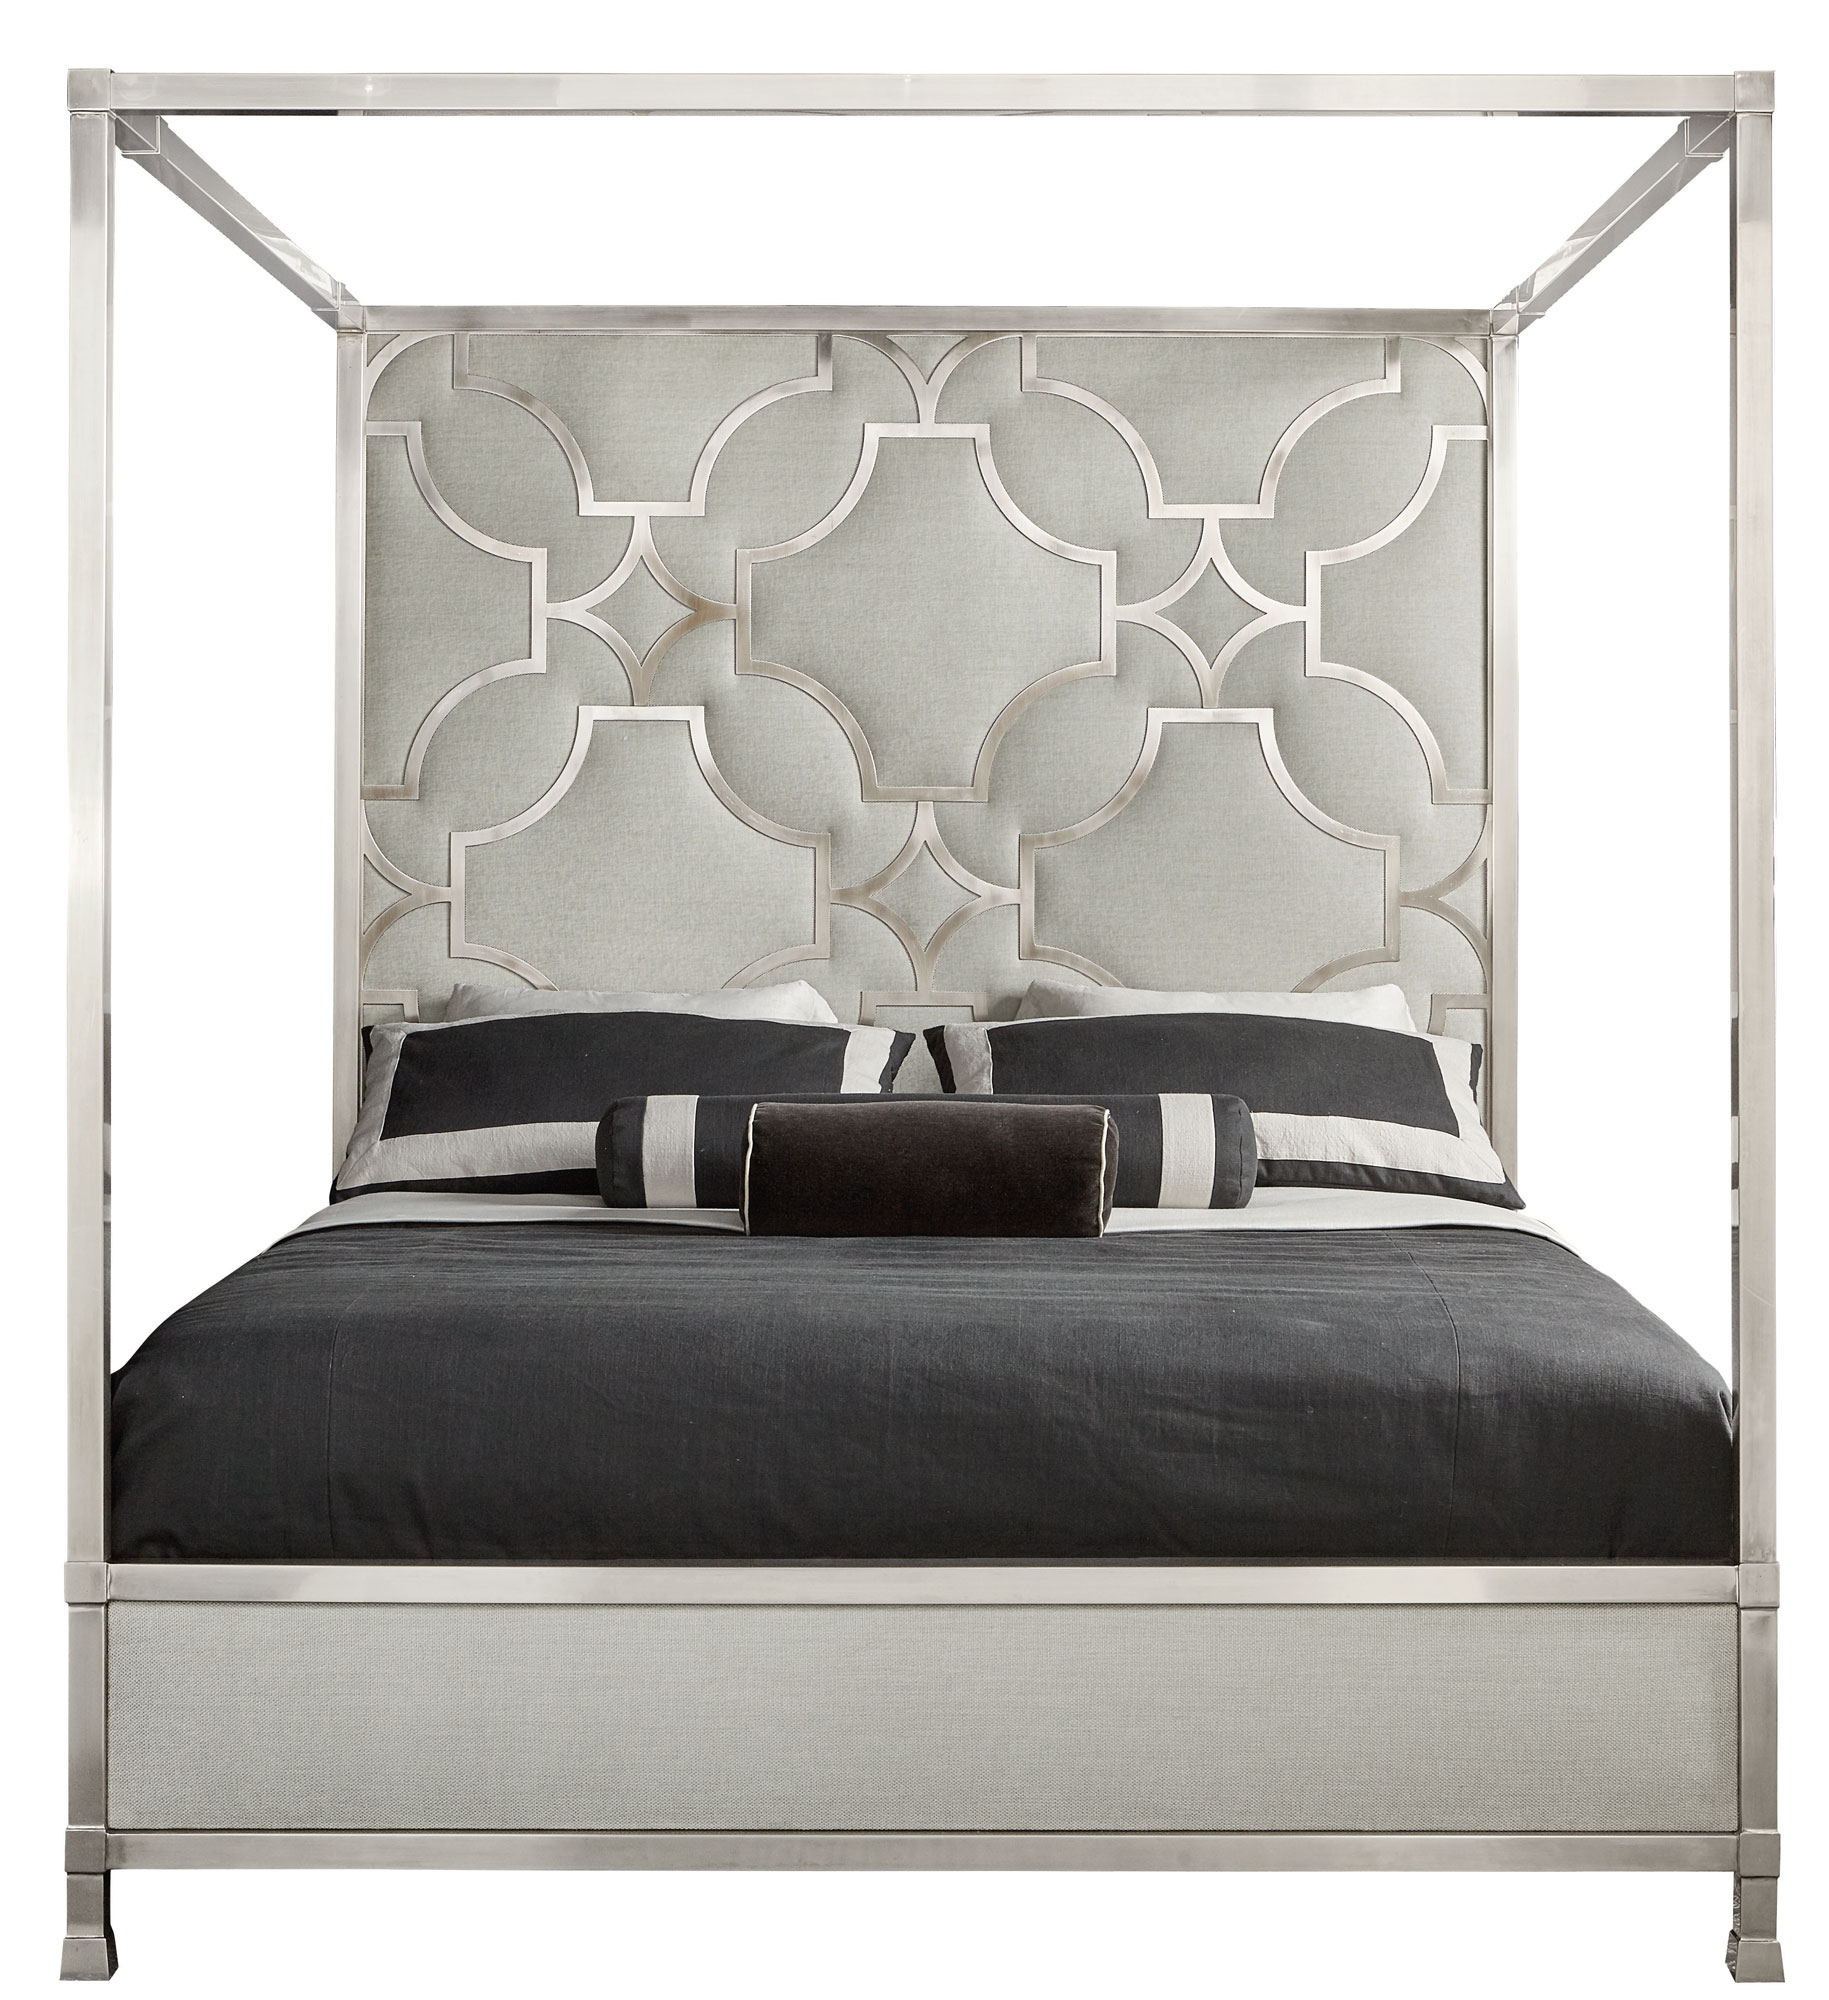 Domaine Blanc Upholstered Metal Canopy King Bed